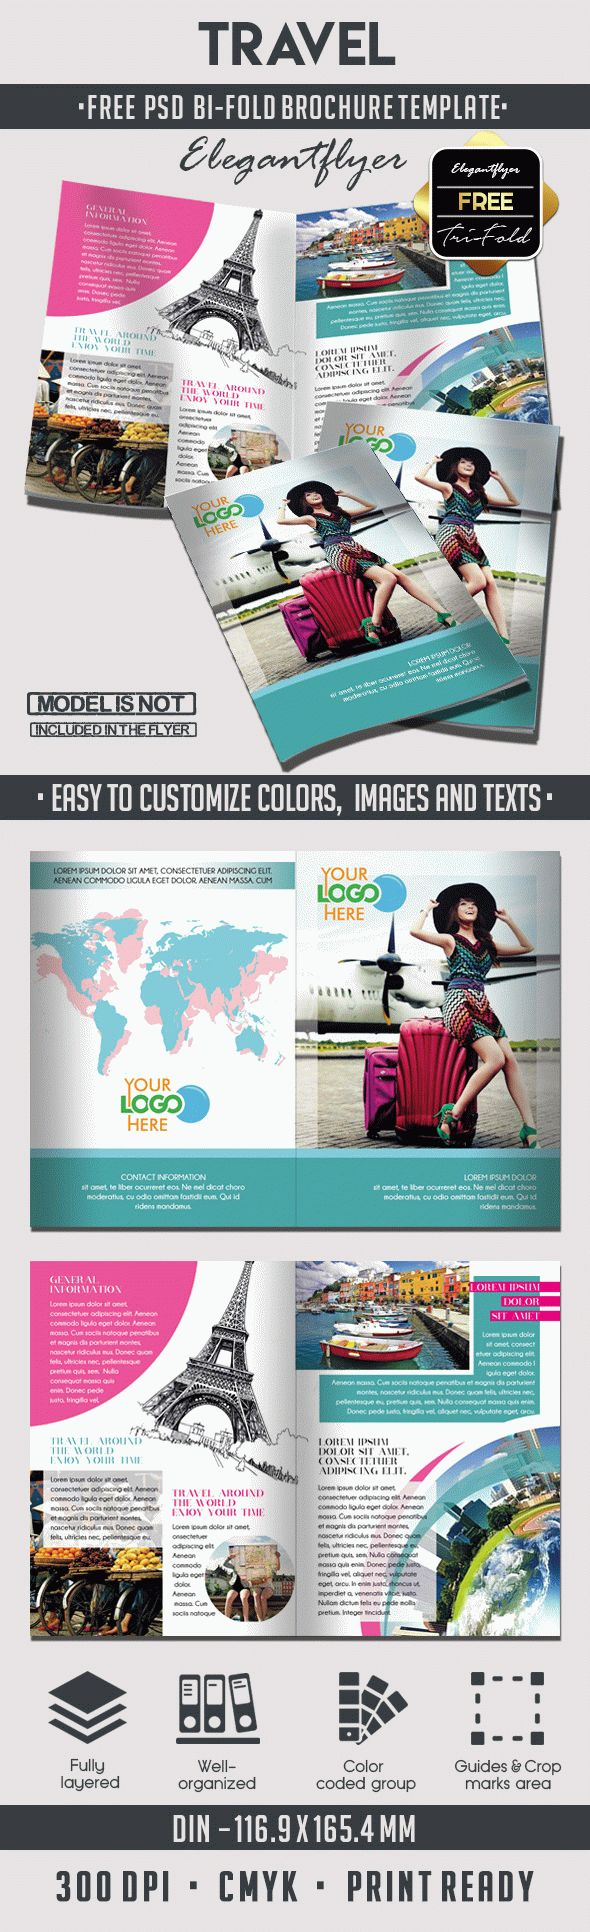 Travel free bi fold psd brochure template by elegantflyer for Travel and tourism brochure templates free